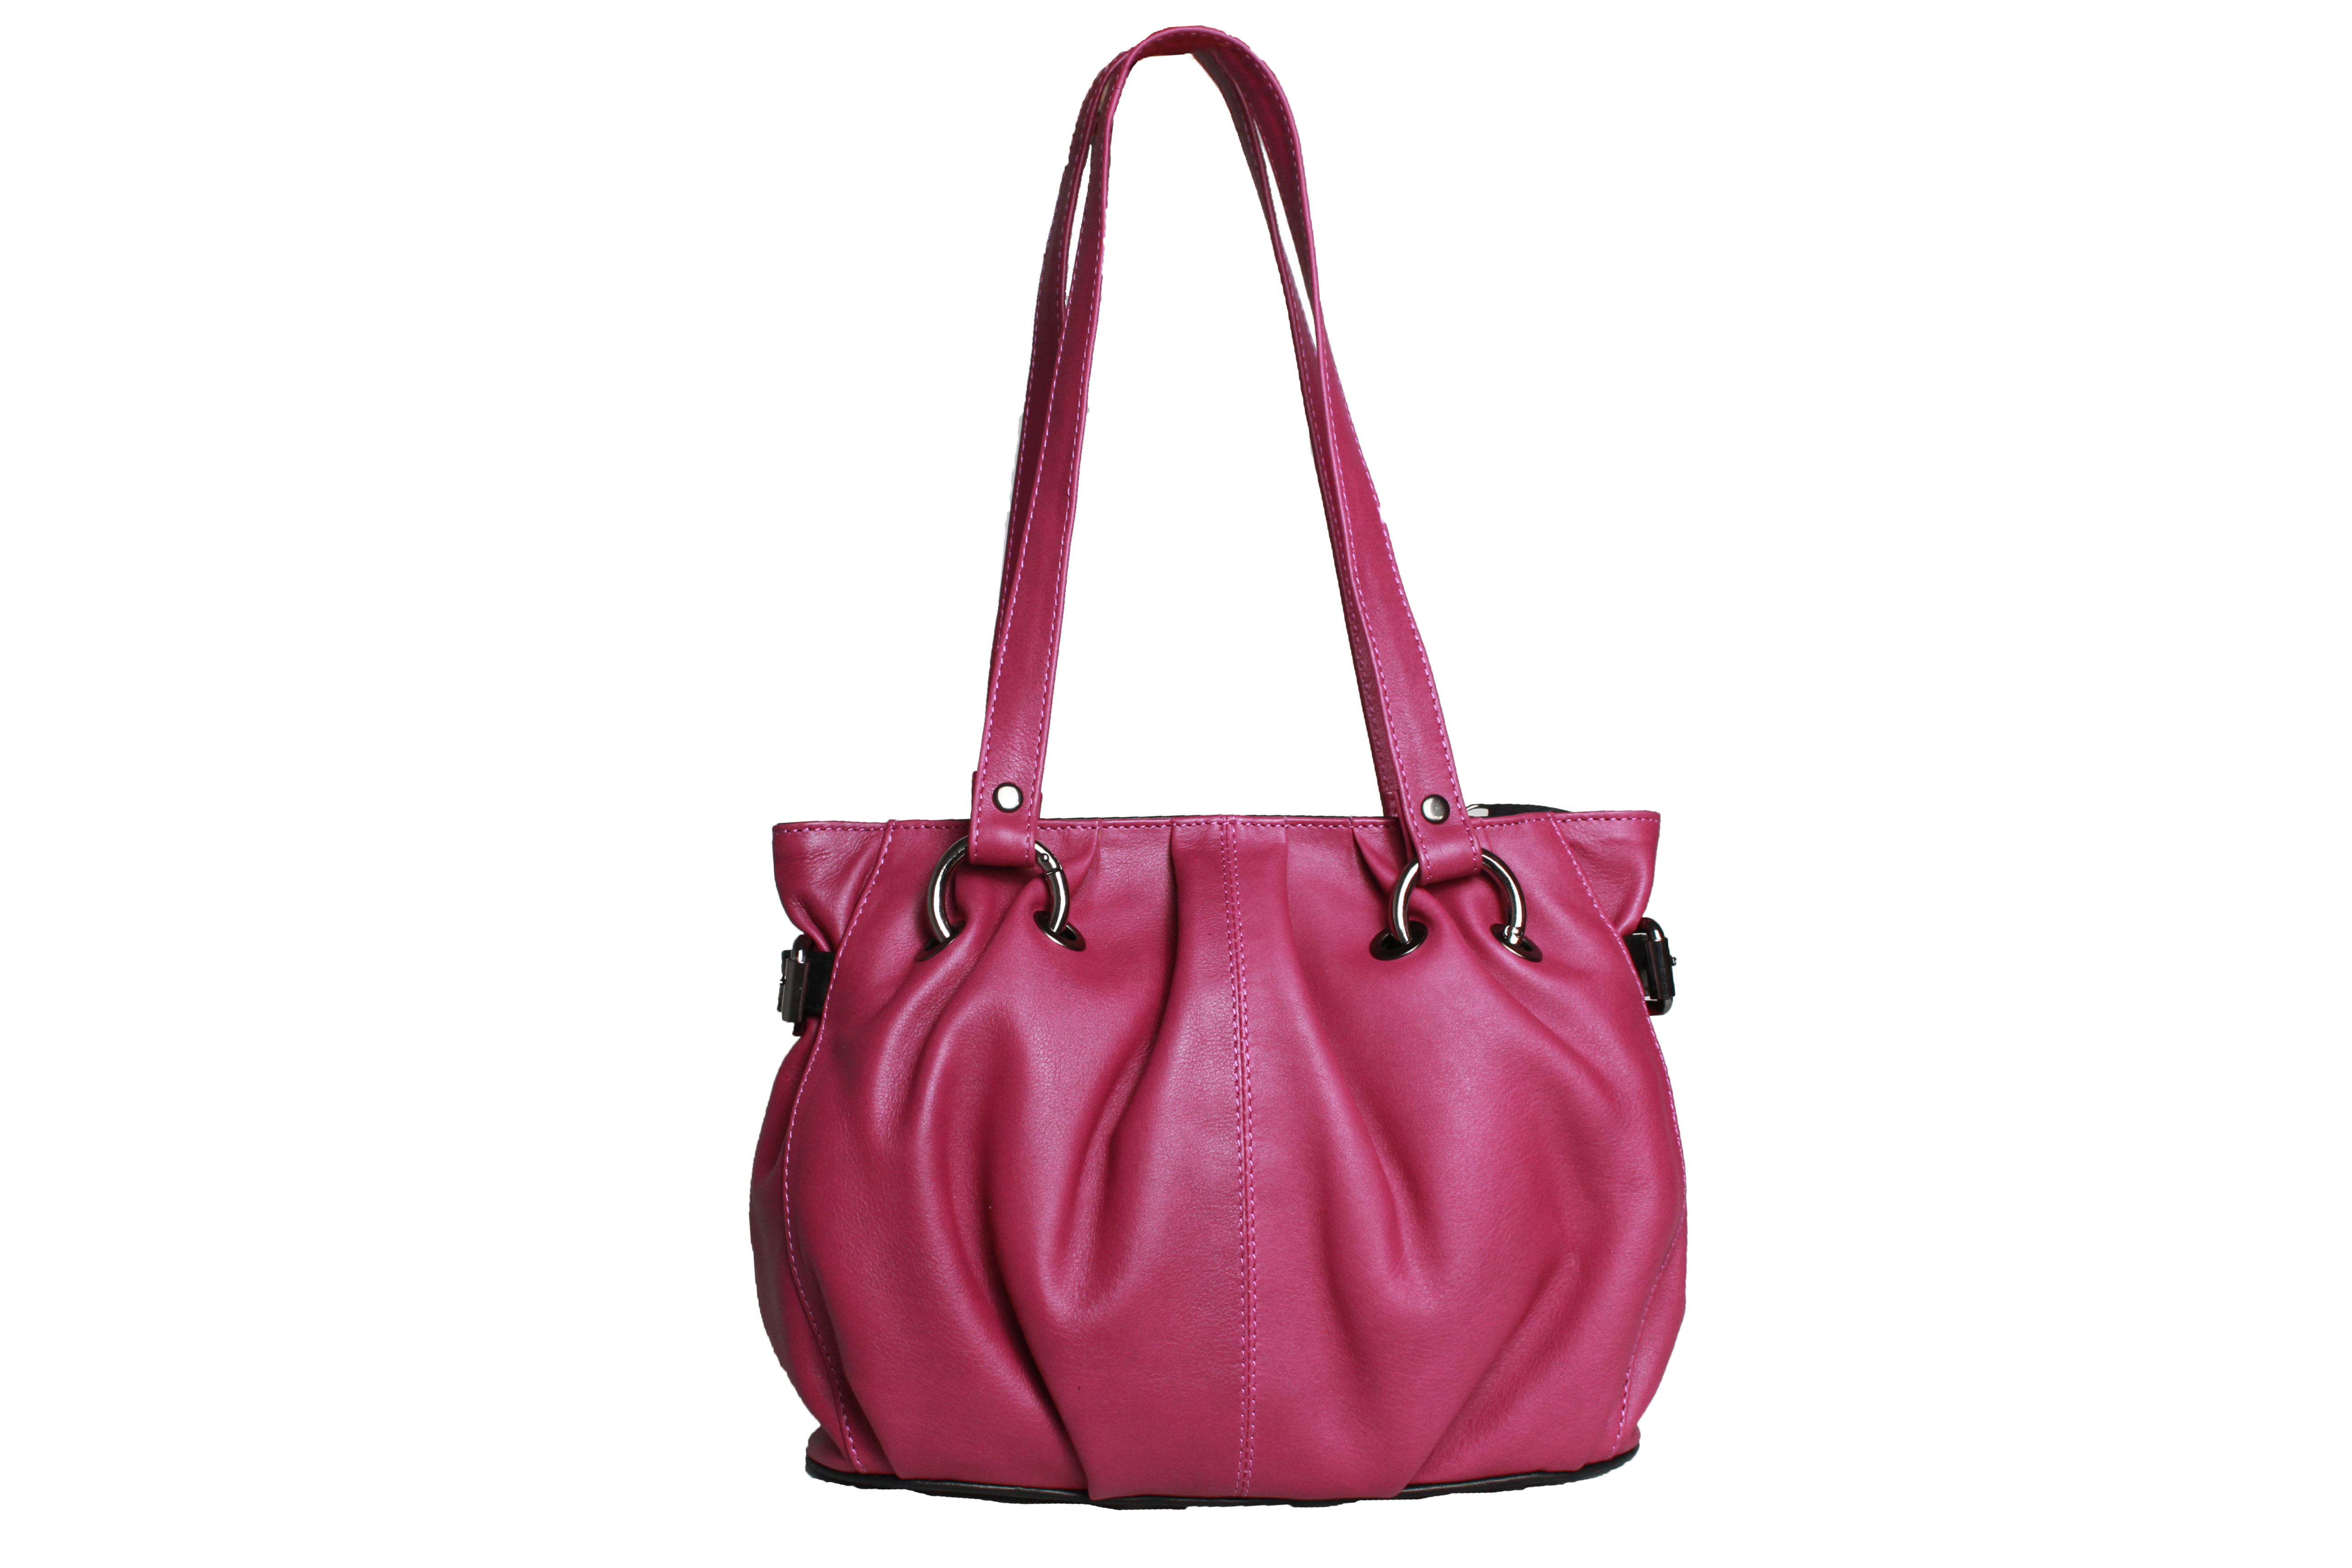 Pearl handbag – more colours